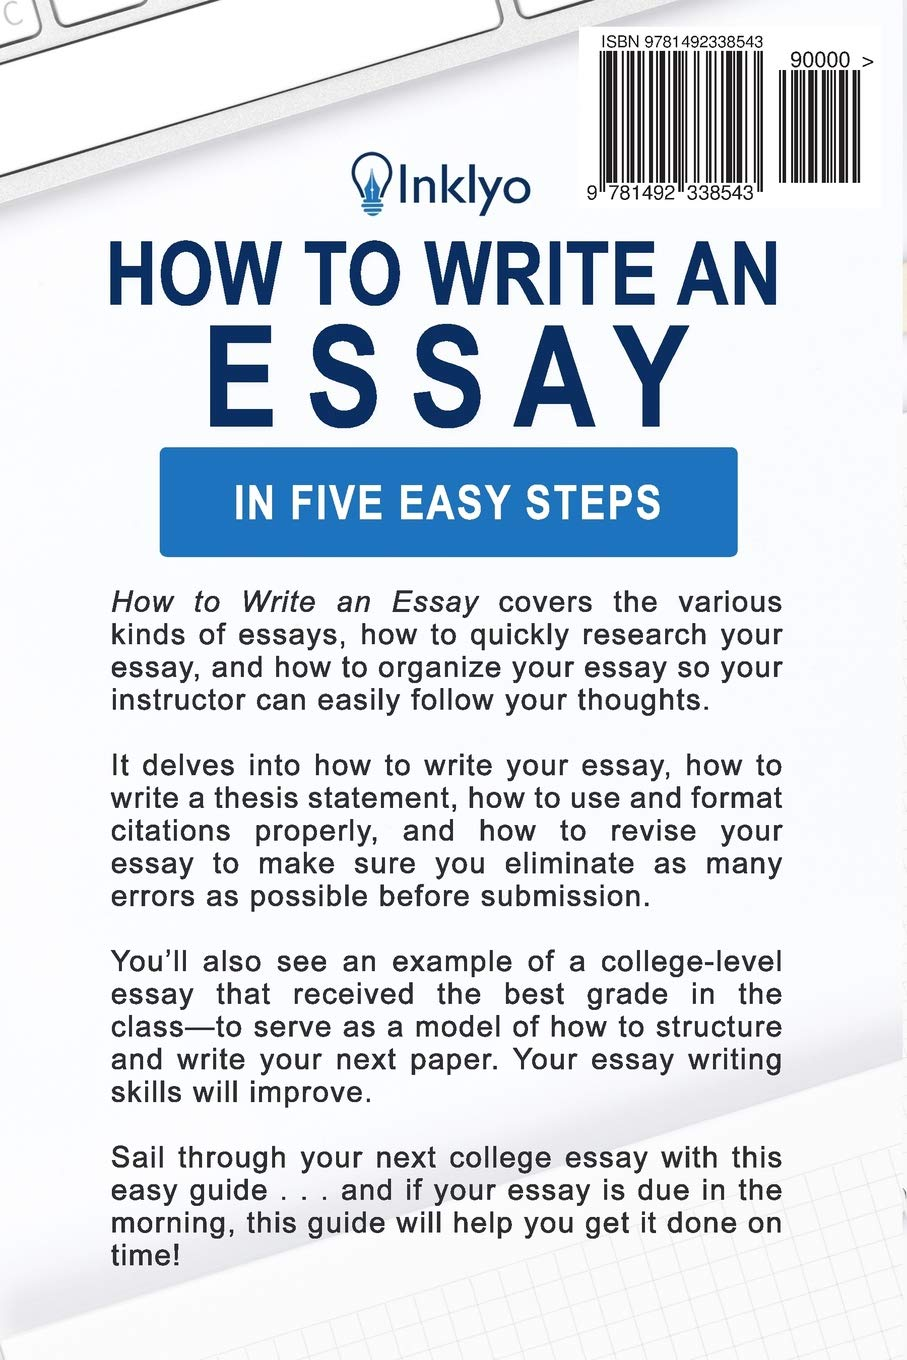 007 How To Do An Essay Example Surprising Write Academic Fast Conclusion On A Book I Cite In Apa Format Full